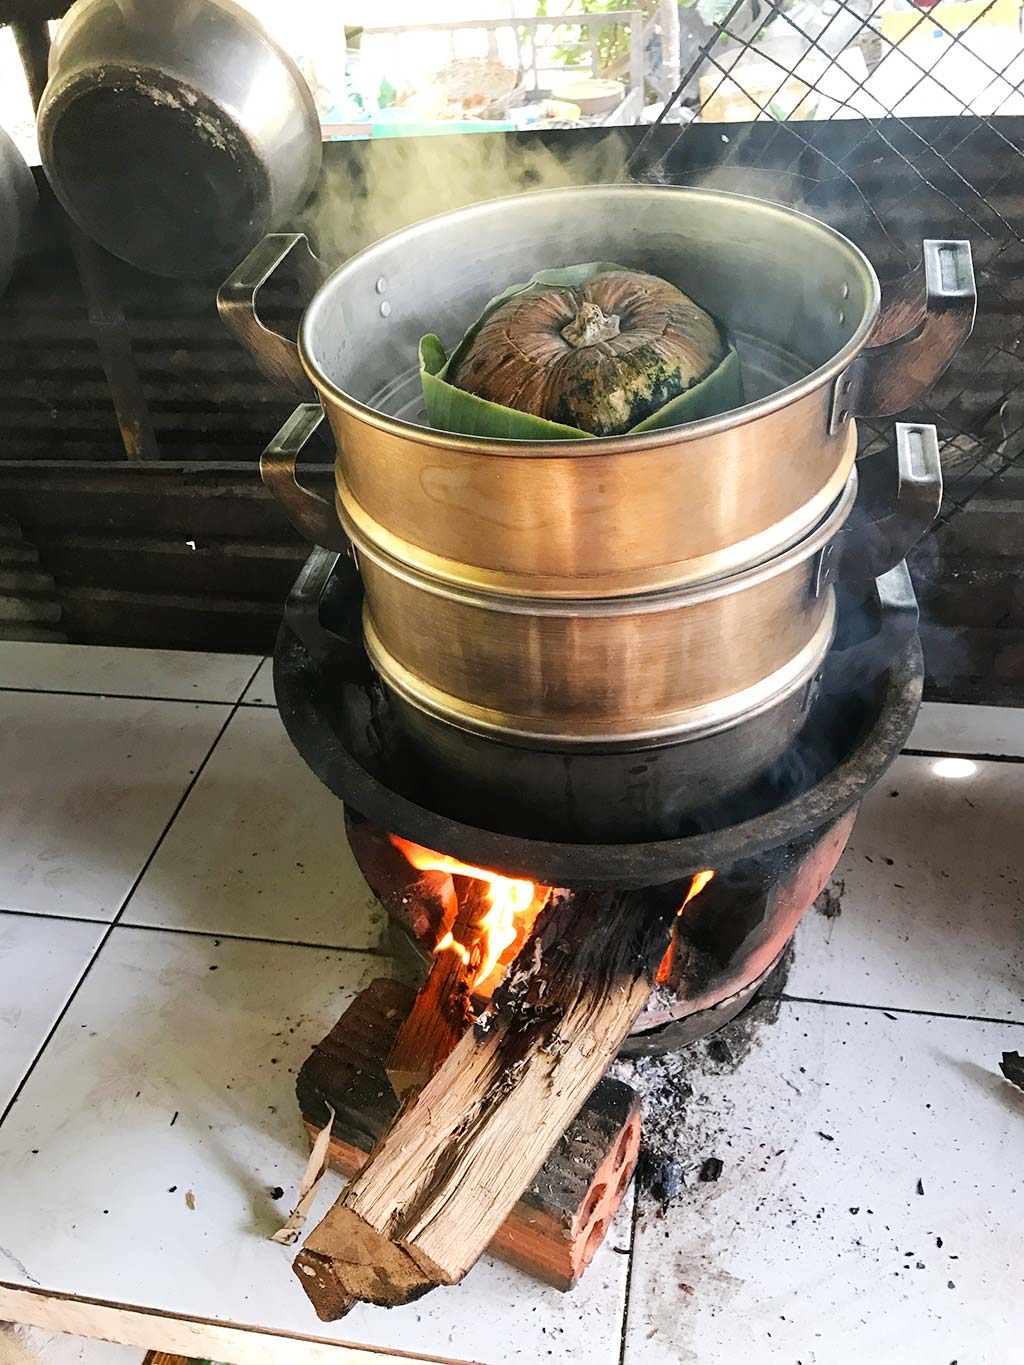 Wood fire cooking at siem reap cooking class, Cambodia | Laugh Travel Eat